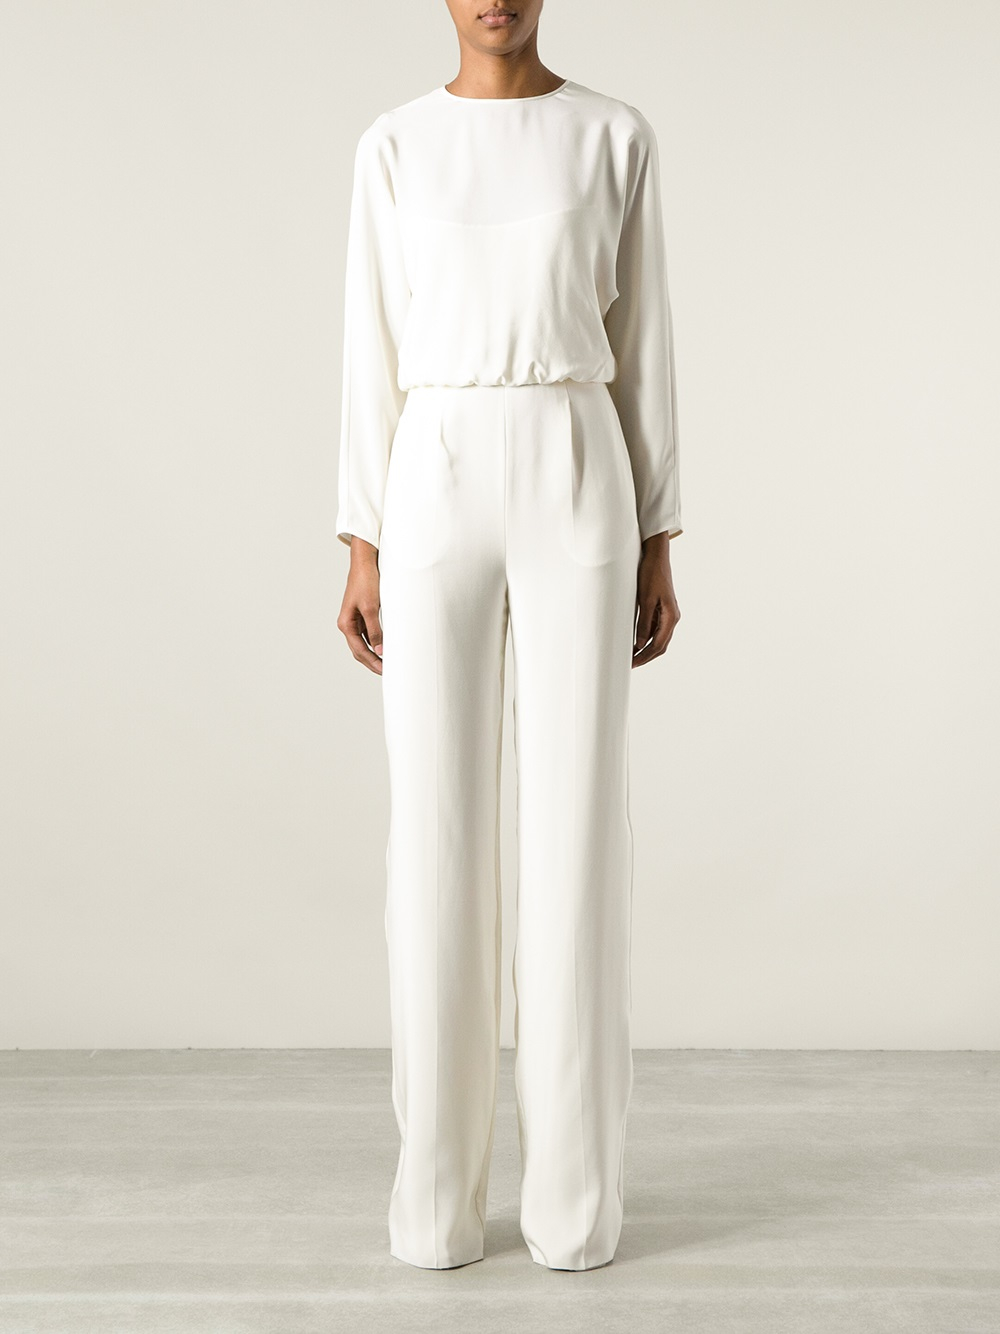 Valentino Long Sleeve Jumpsuit in White | Lyst